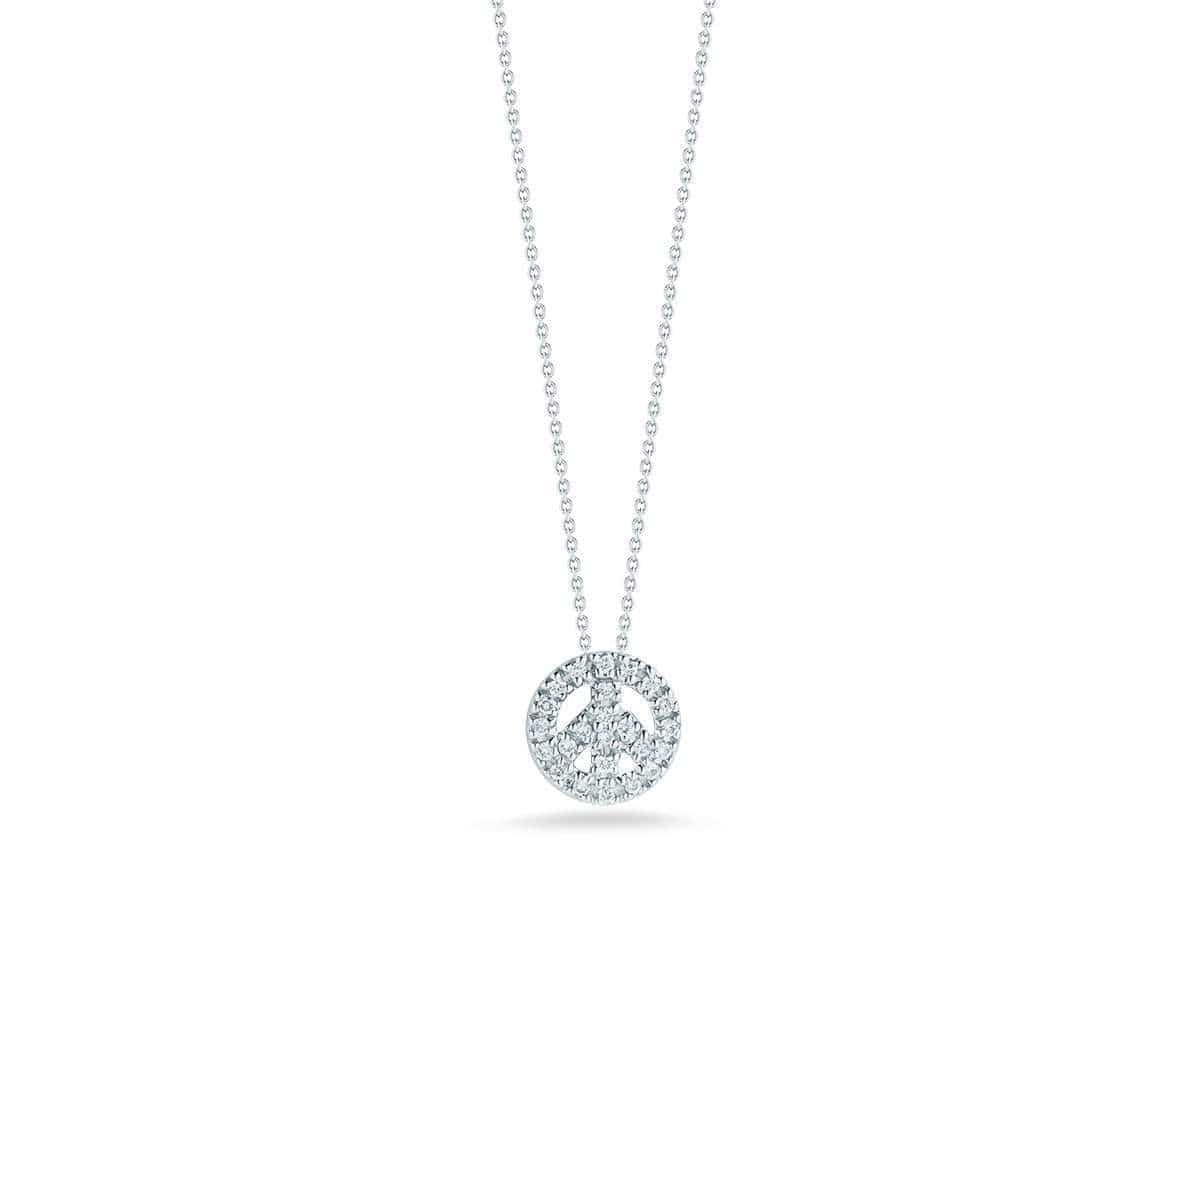 18k White Gold & Diamond Peace Necklace - 001644AWCHX0-Roberto Coin-Renee Taylor Gallery